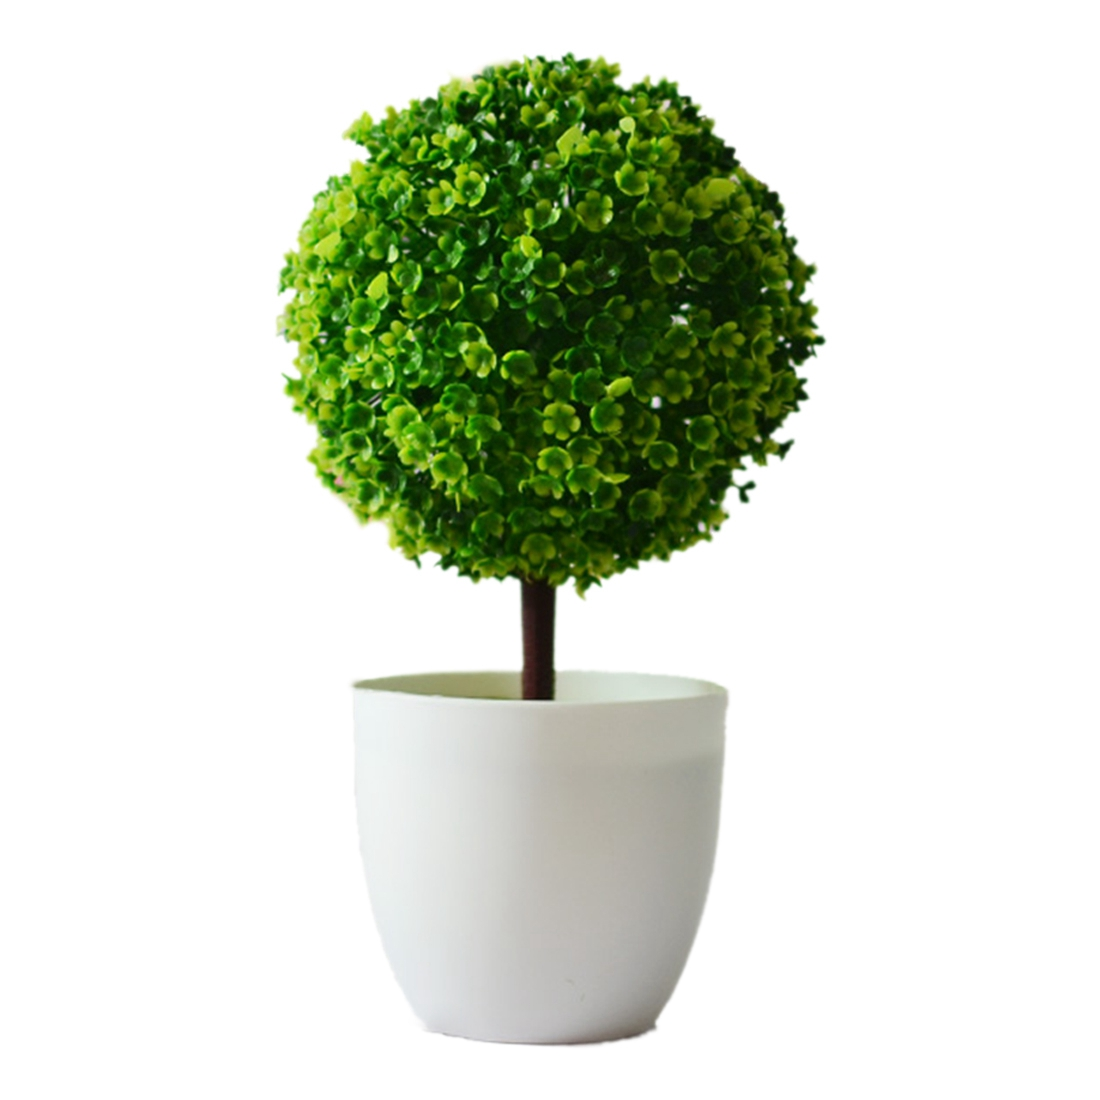 Artificial plants ball bonsai can washes decorative green plants for ...